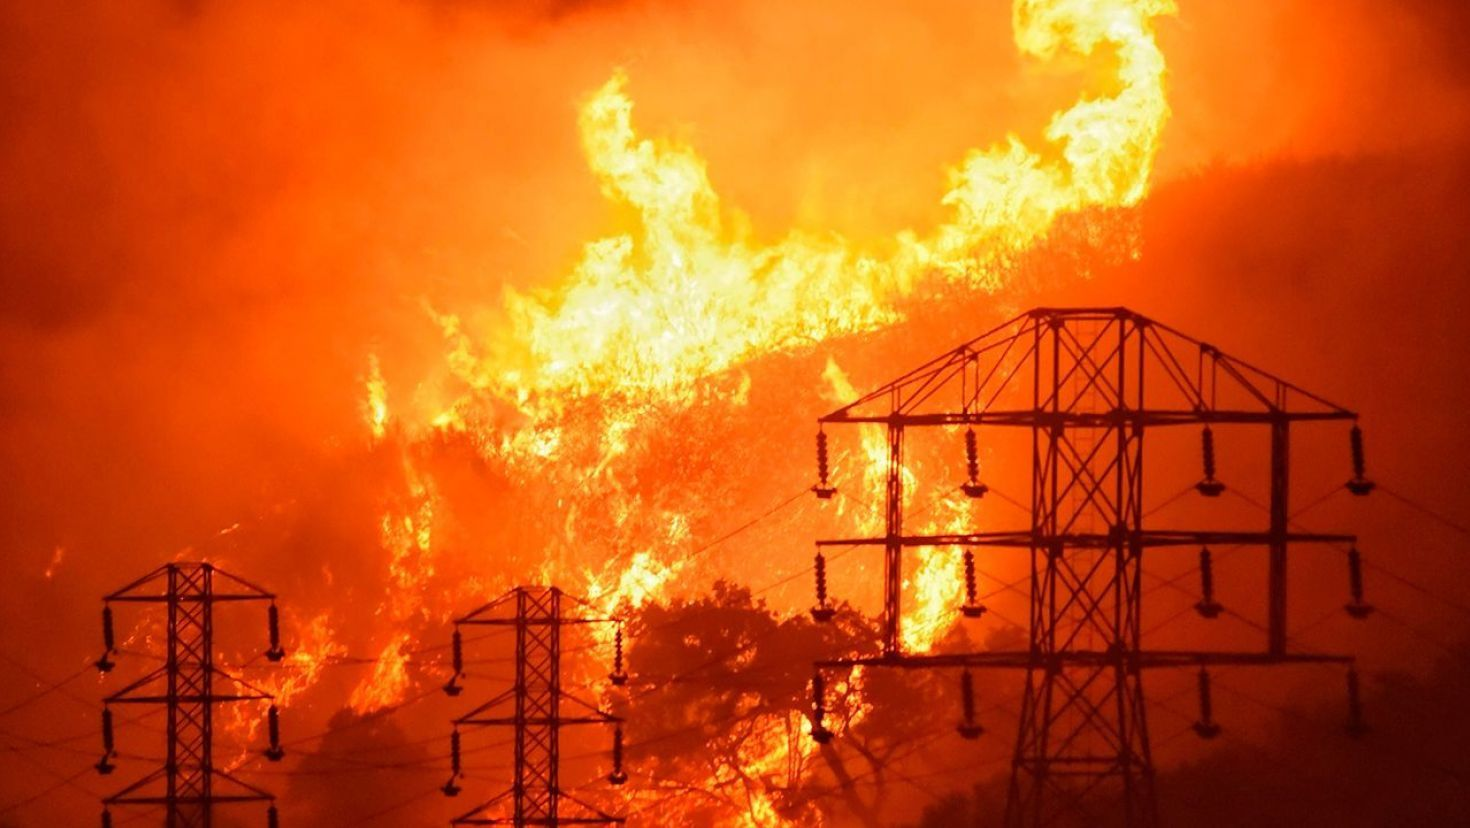 Pacific Gas & Electric says it will aid wildfire investigators after